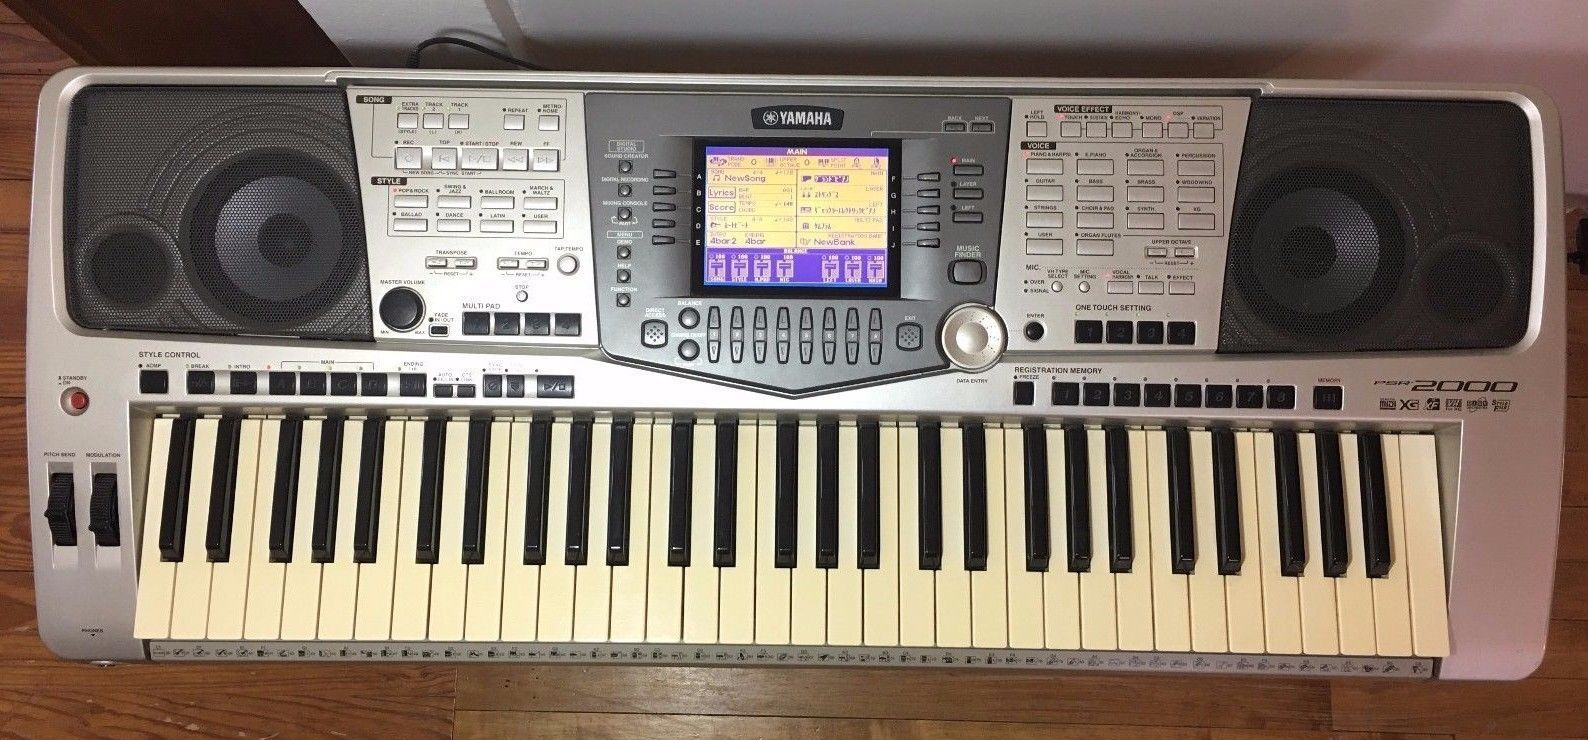 yamaha psr 2000 keyboard synthesizer functional power. Black Bedroom Furniture Sets. Home Design Ideas